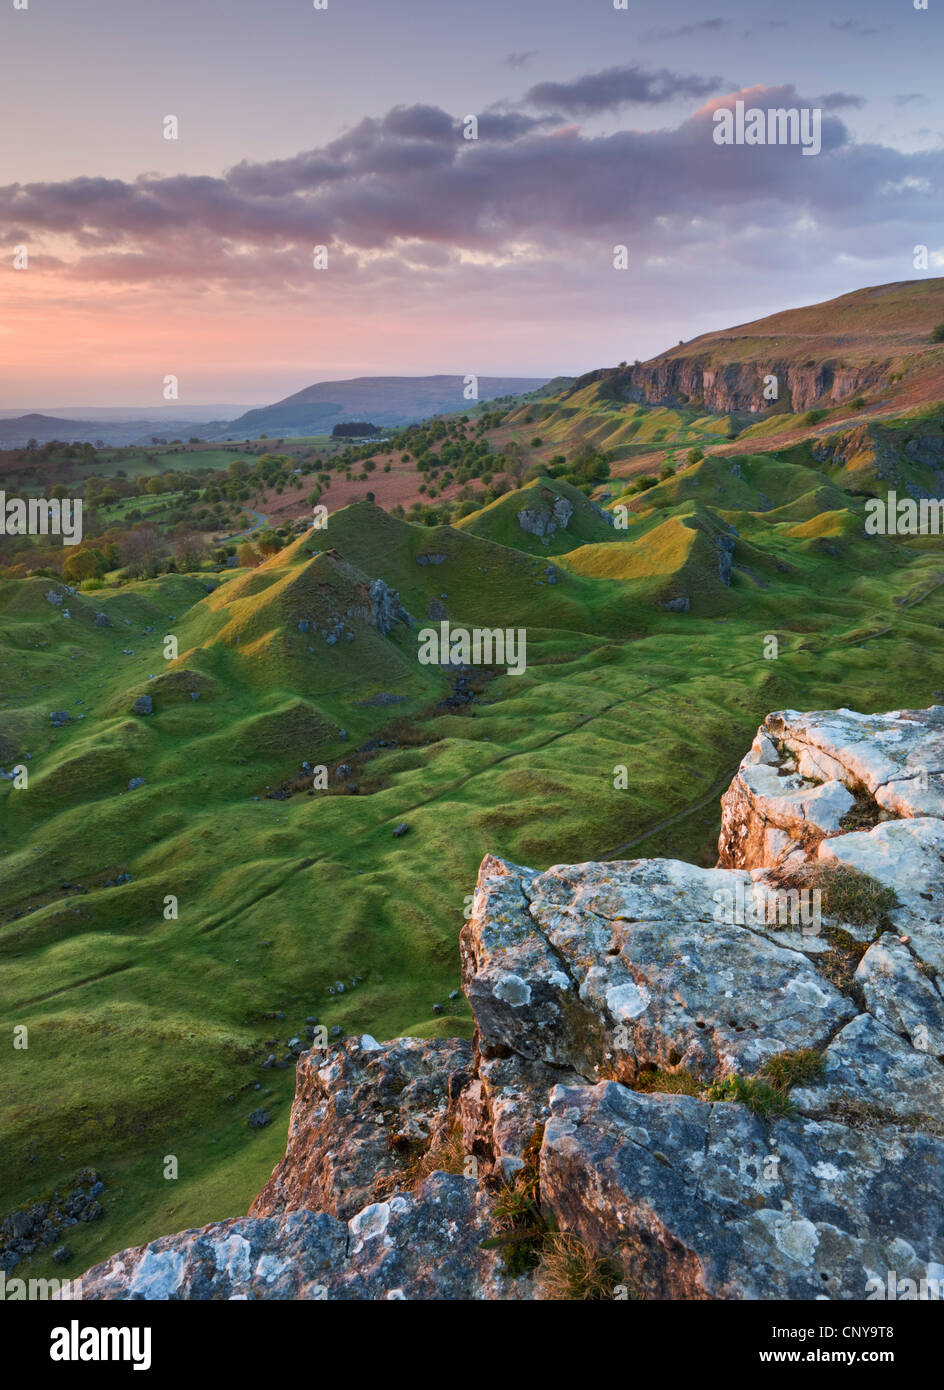 Sunrise over the Llangattock Escarpment in the Brecon Beacons, Powys, Wales. Spring 2010. - Stock Image